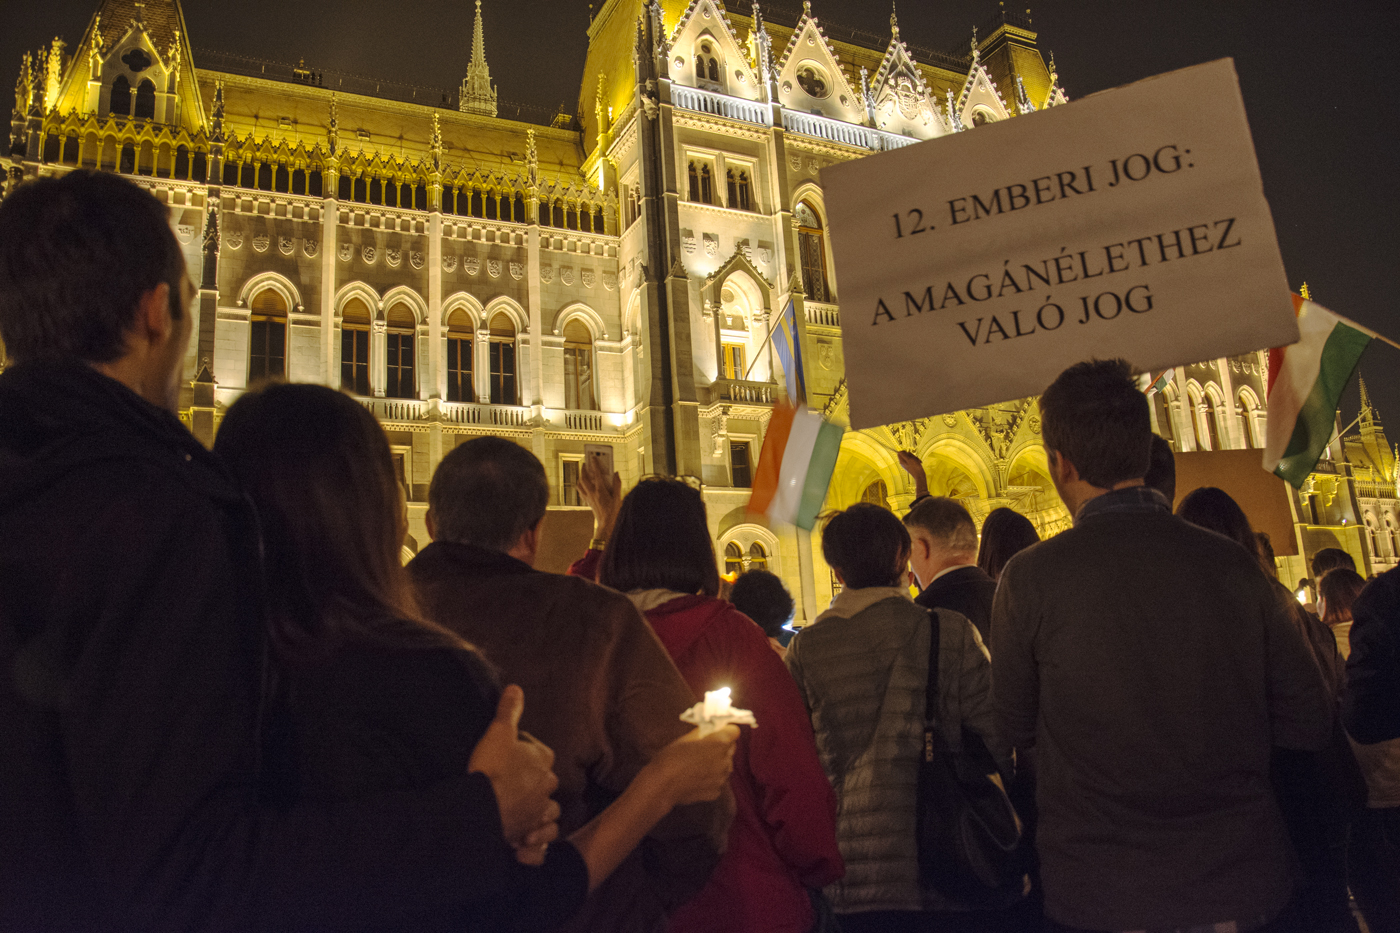 Hungary: Religious Suppression Under the Guise of Data Protection